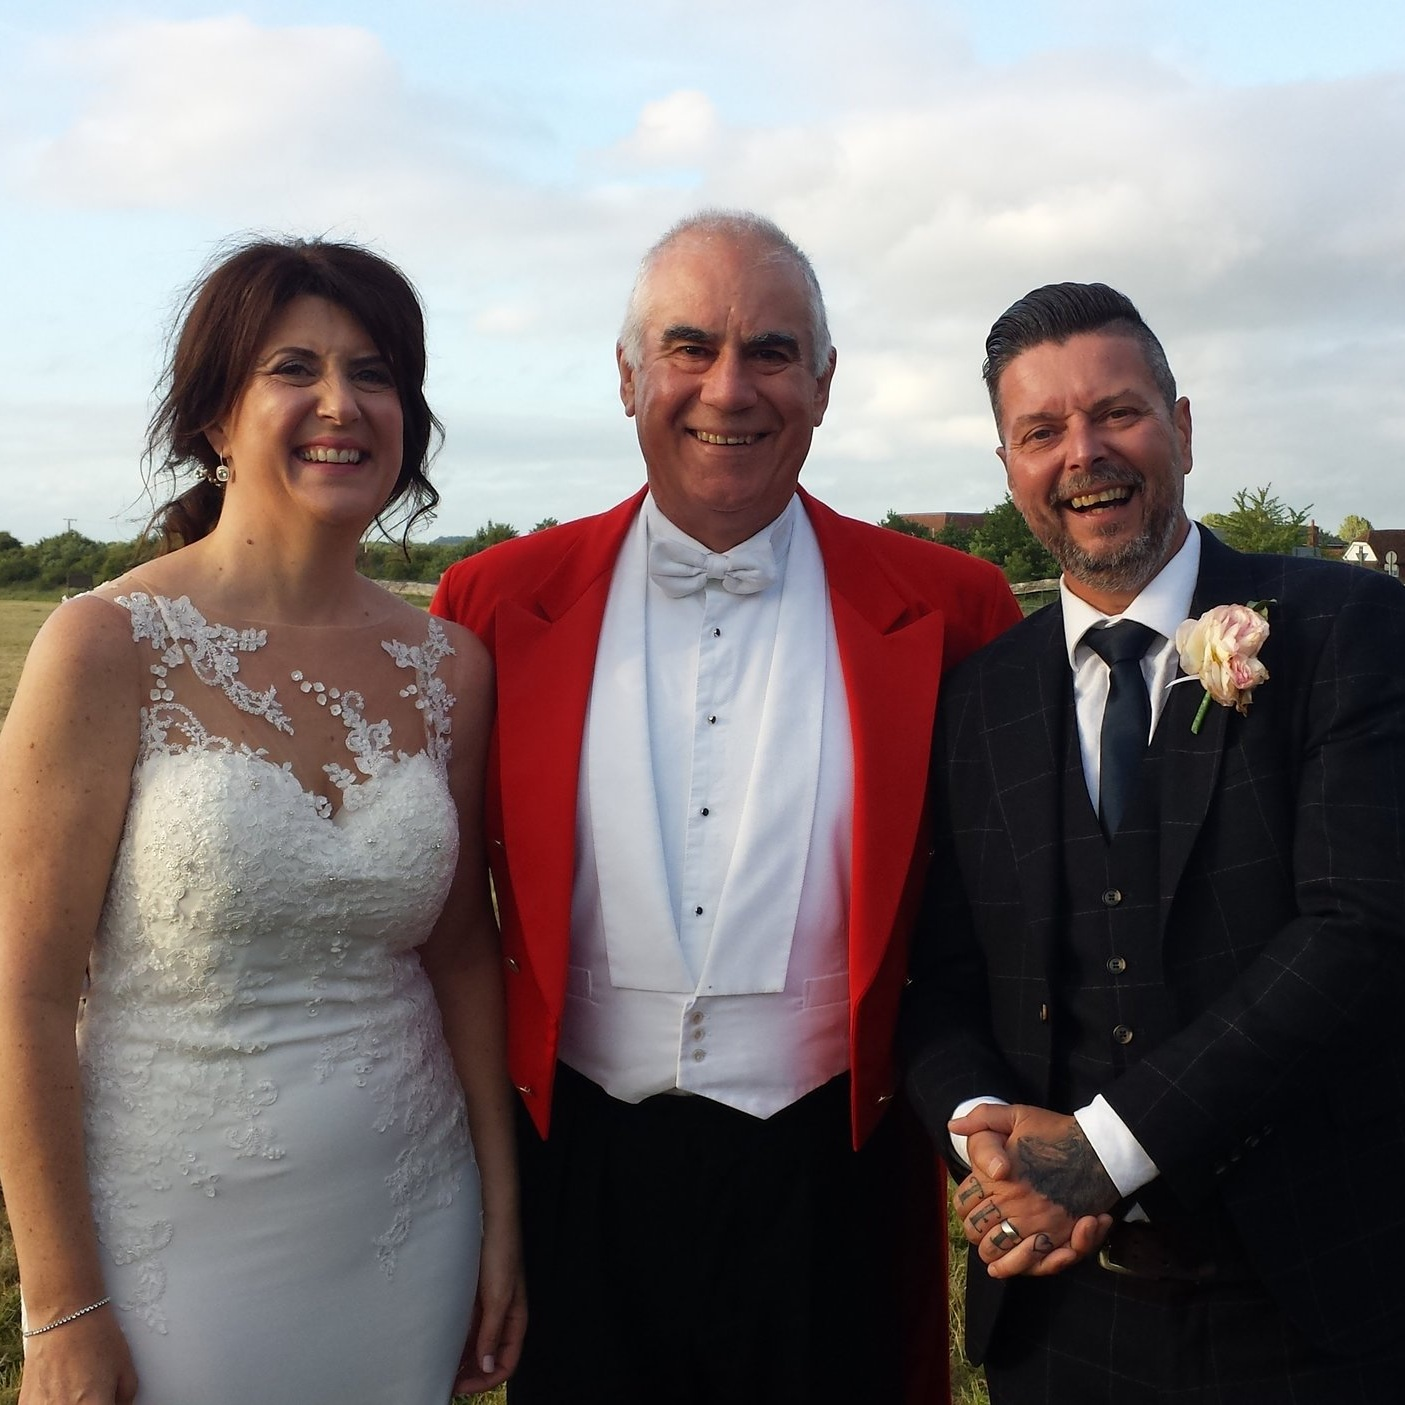 David dicara wedding toastmaster - The Toastmaster is one of the great wedding traditions which will add a touch of nostalgic charm to your big day.